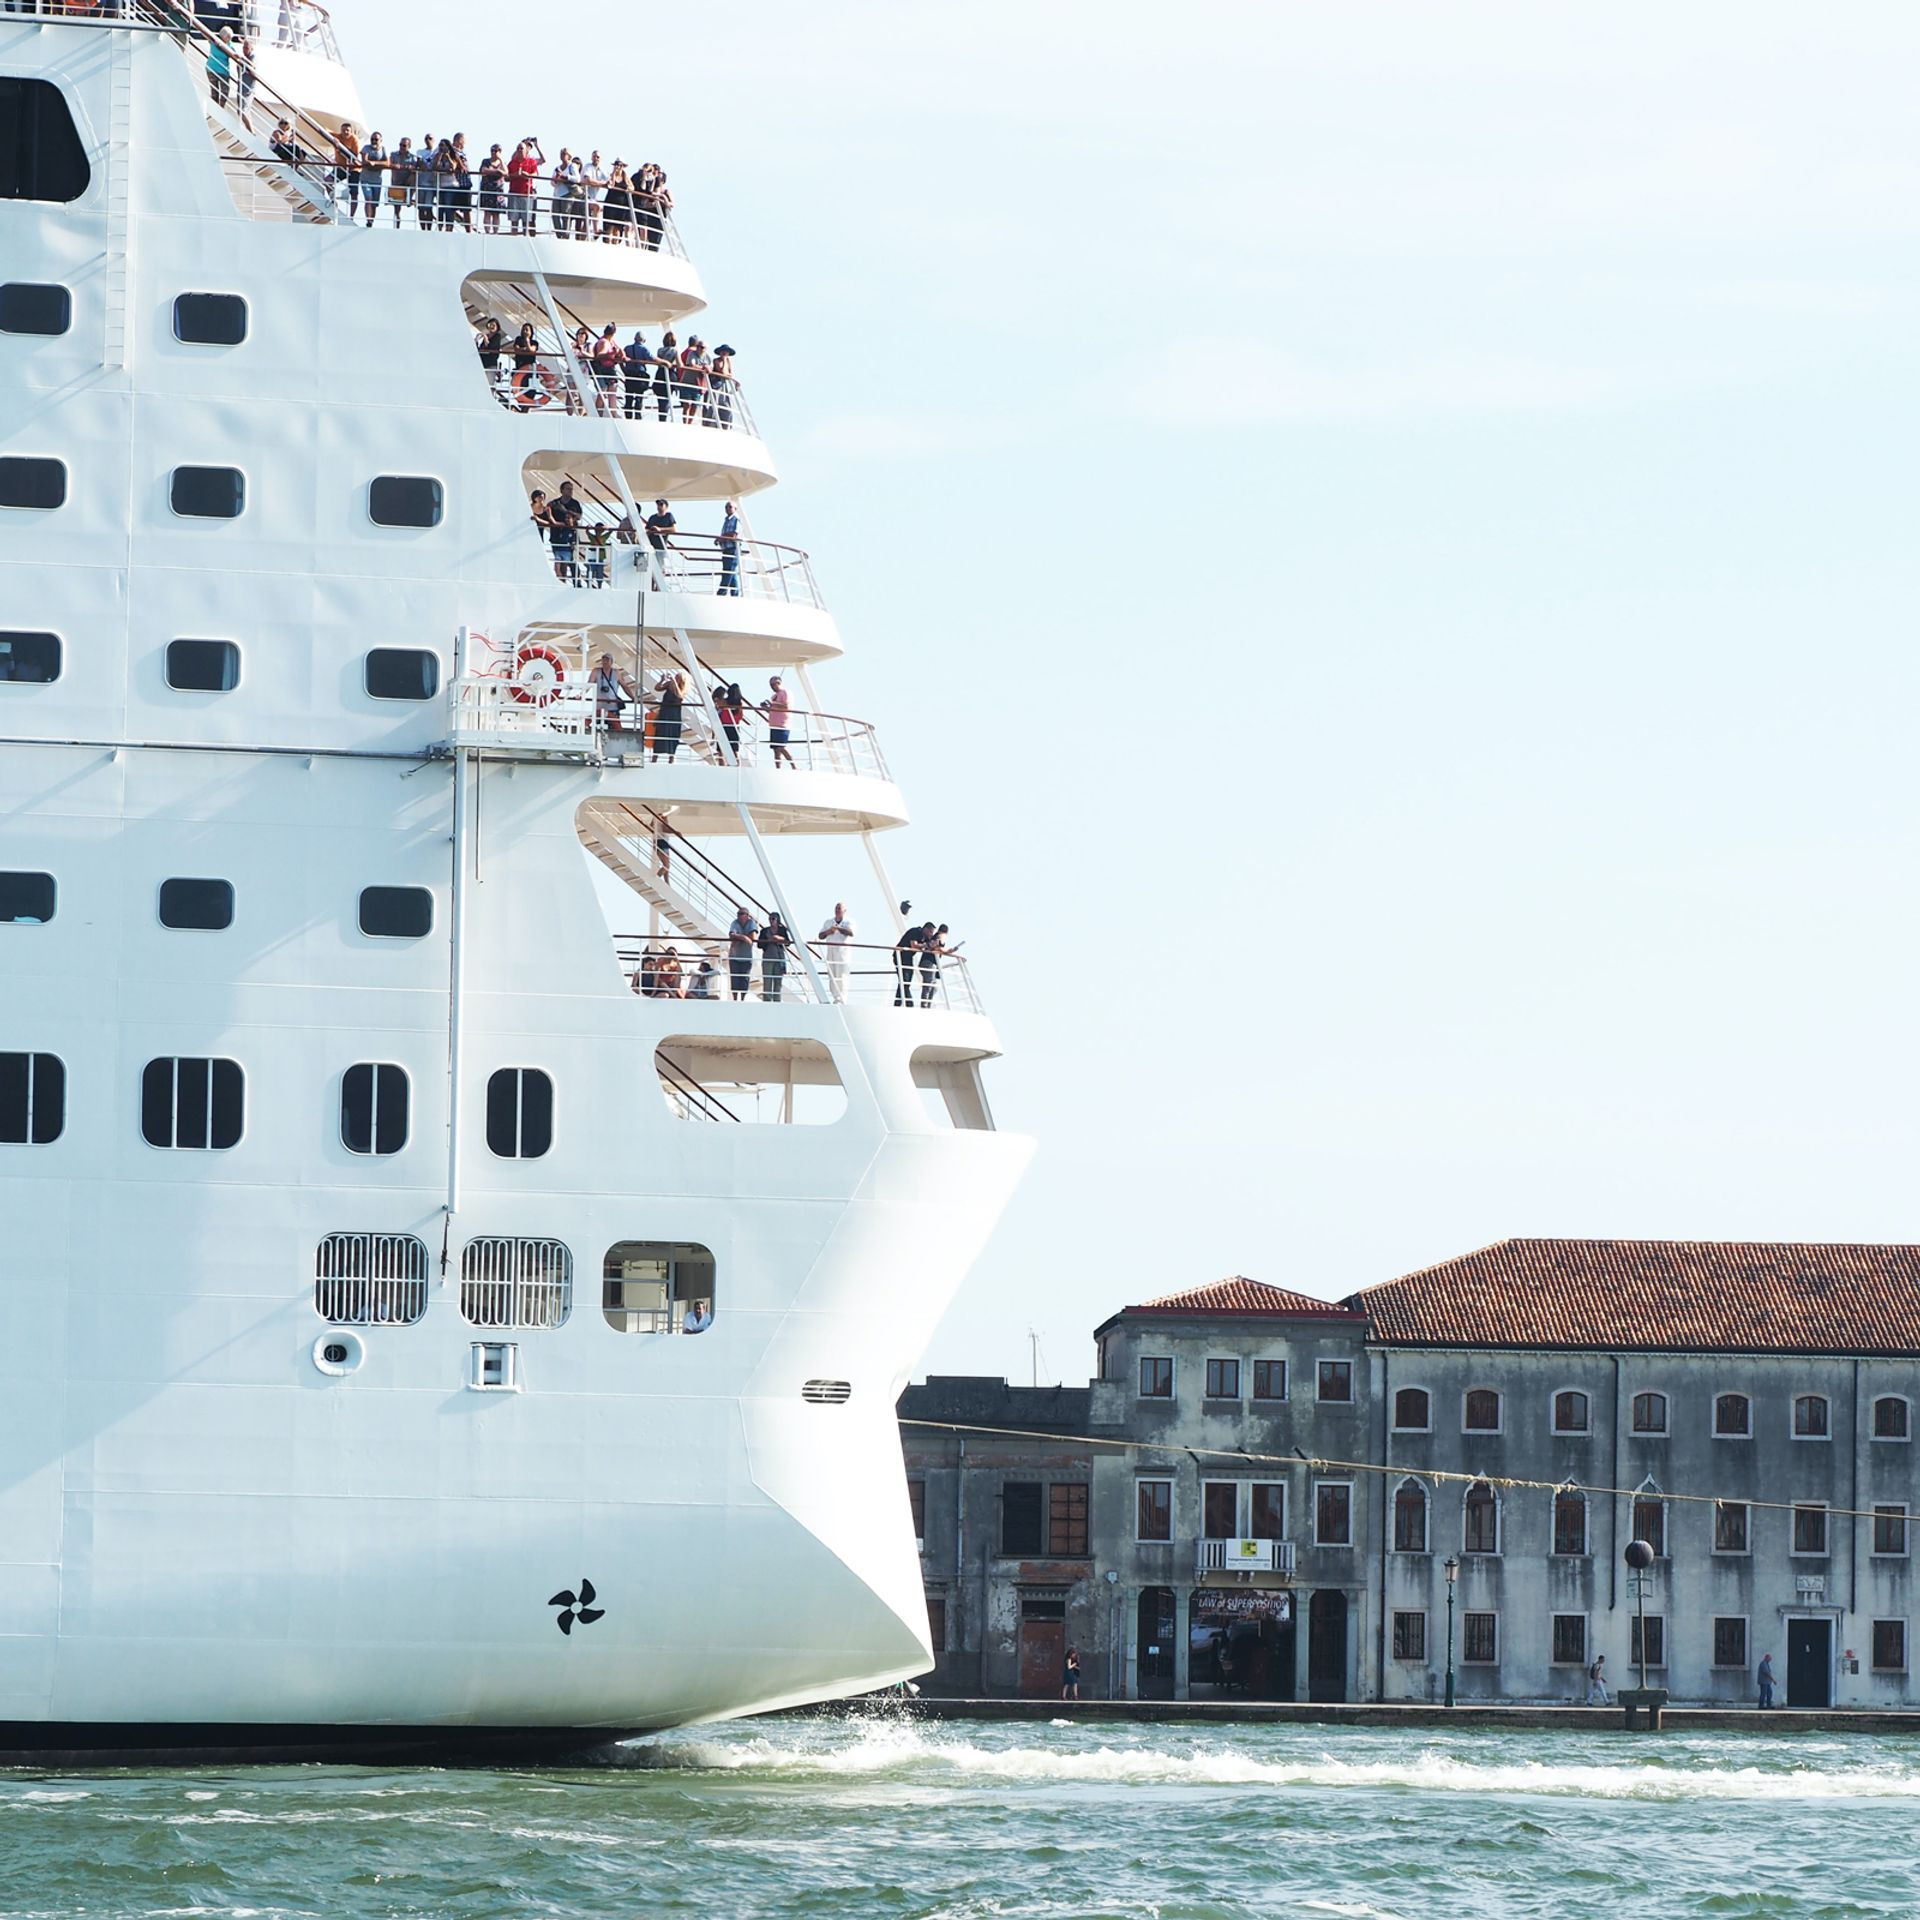 The first cruise ship since the start of the pandemic is due to sail through Venice on 5 June © Drew Harbour